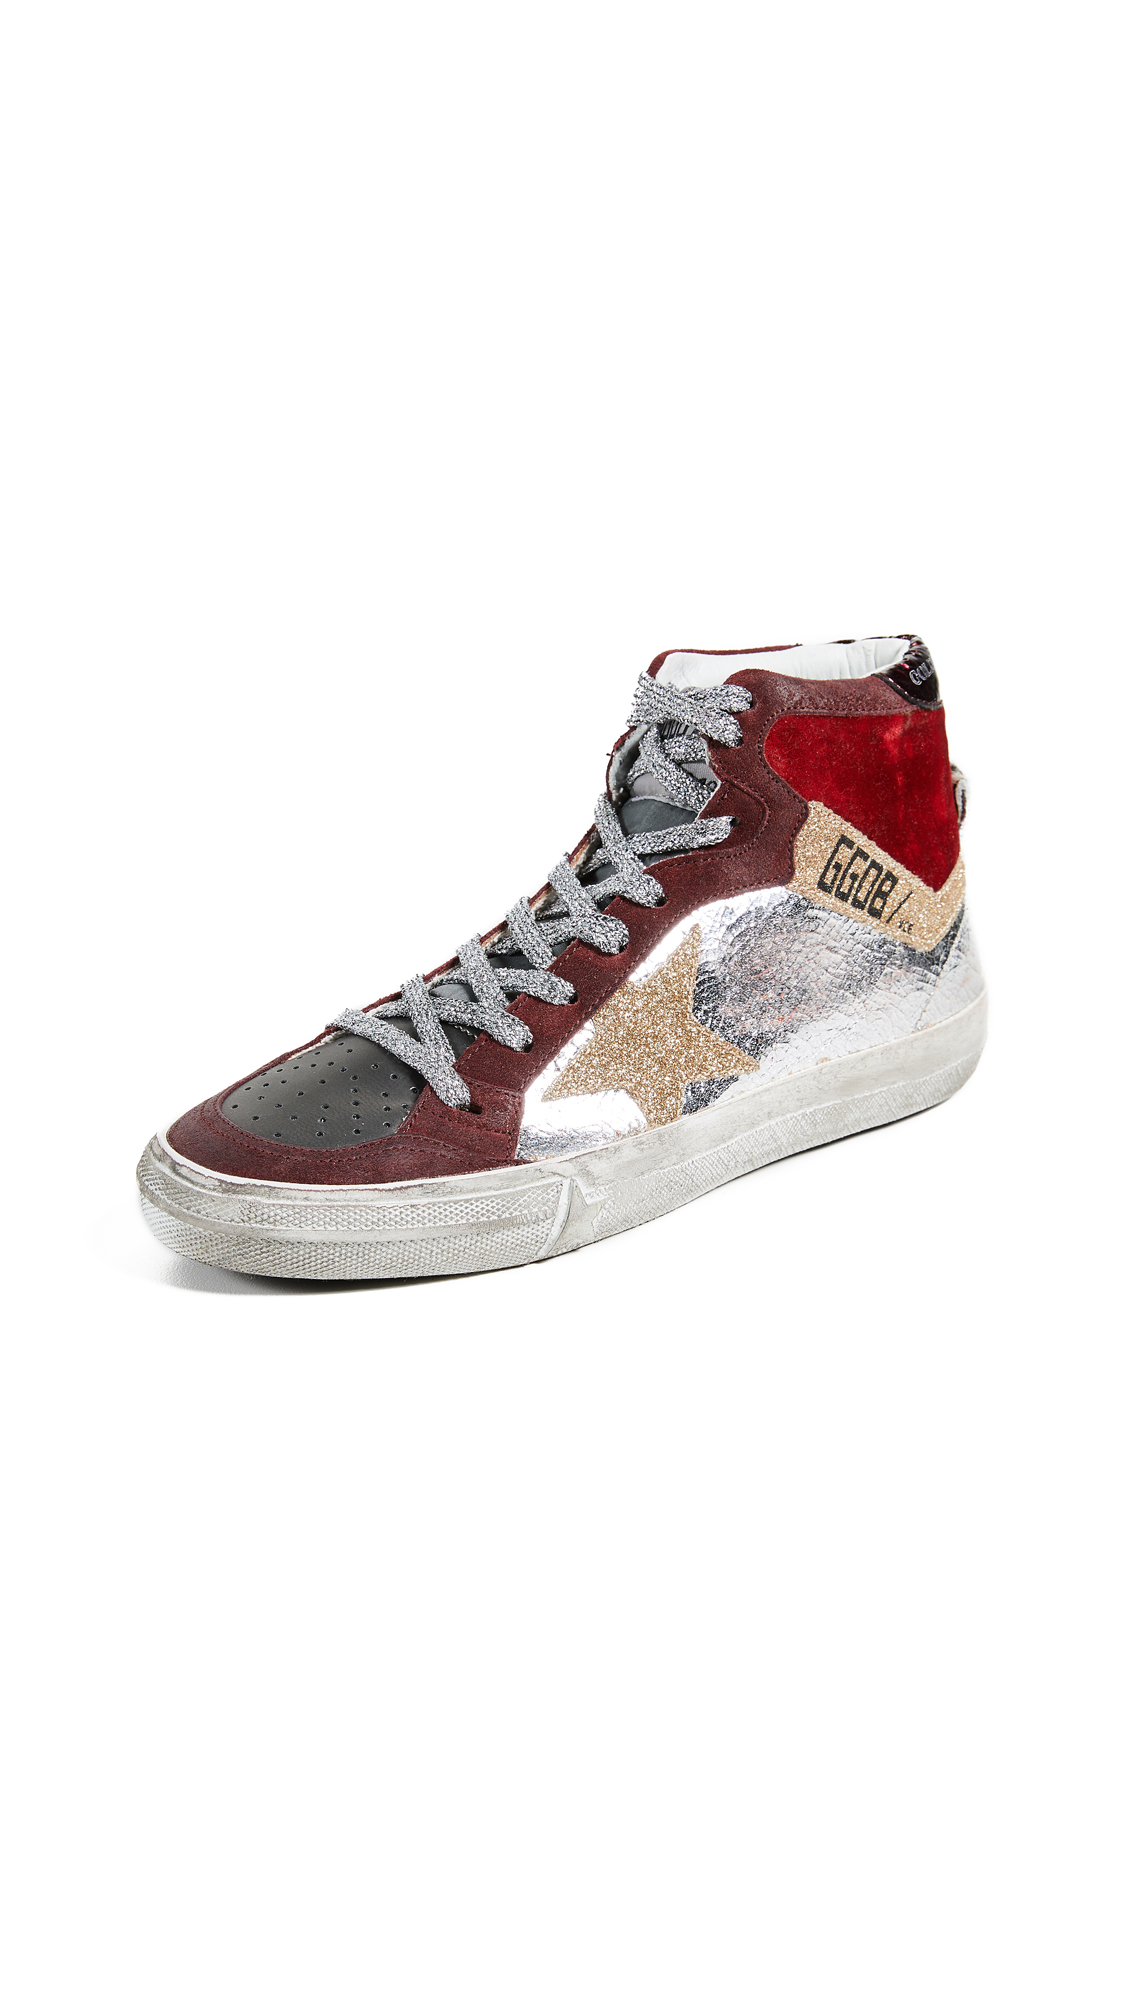 Golden Goose 2.12 Sneakers - Silver/Gold